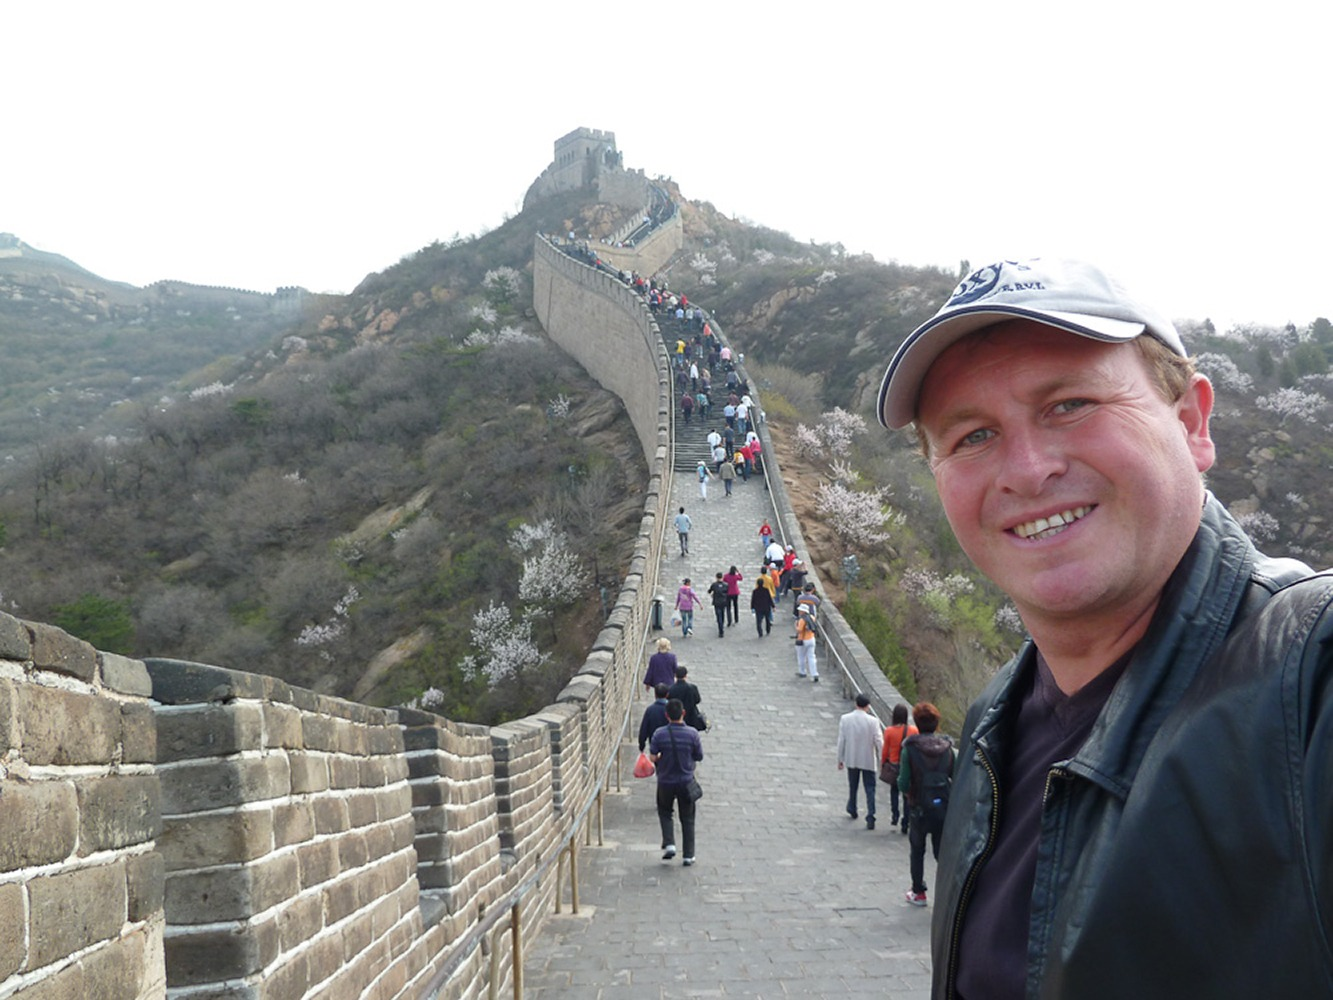 Beijing, Badaling, China. The incredible Great Wall which is 13,170 miles long